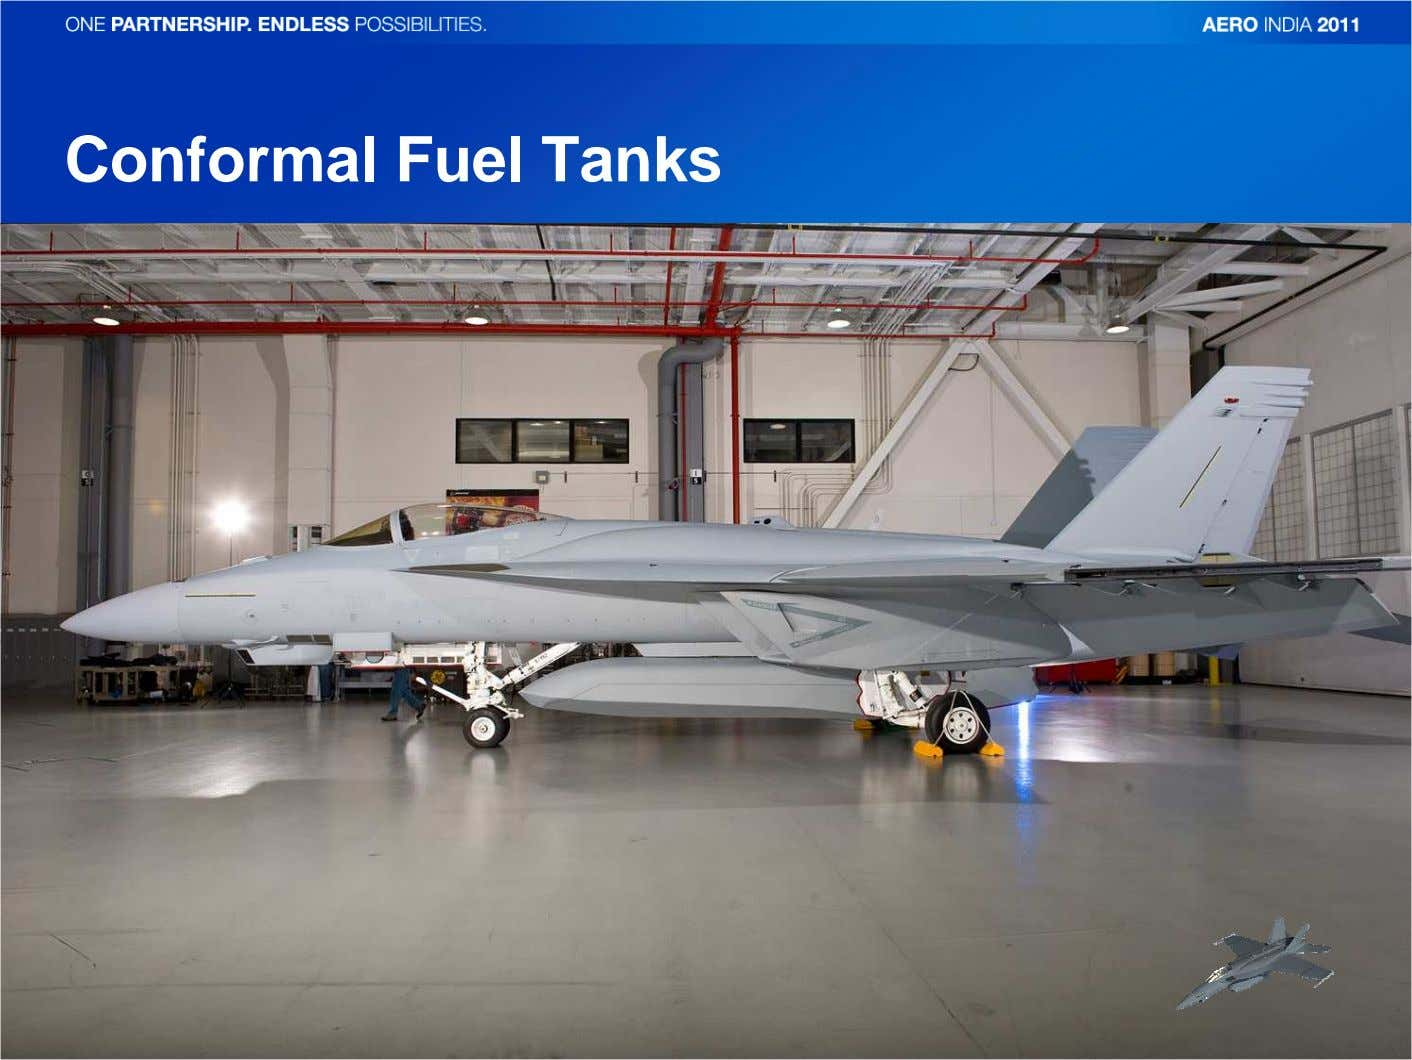 Conformal Fuel Tanks Copyright © 2011 Boeing. All rights reserved.